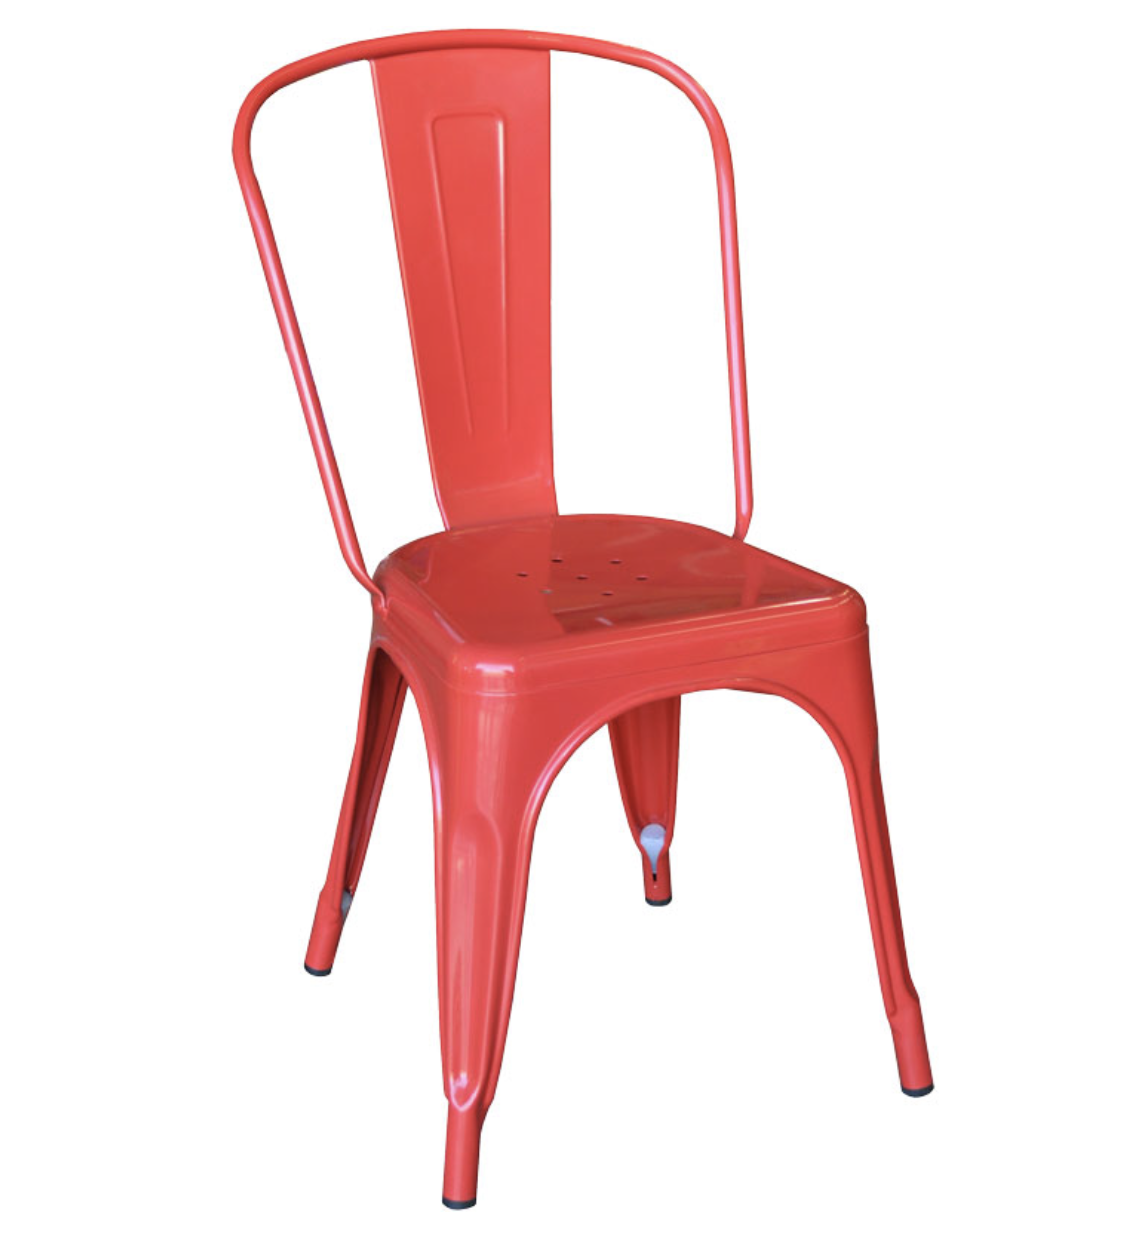 Red tolix chair